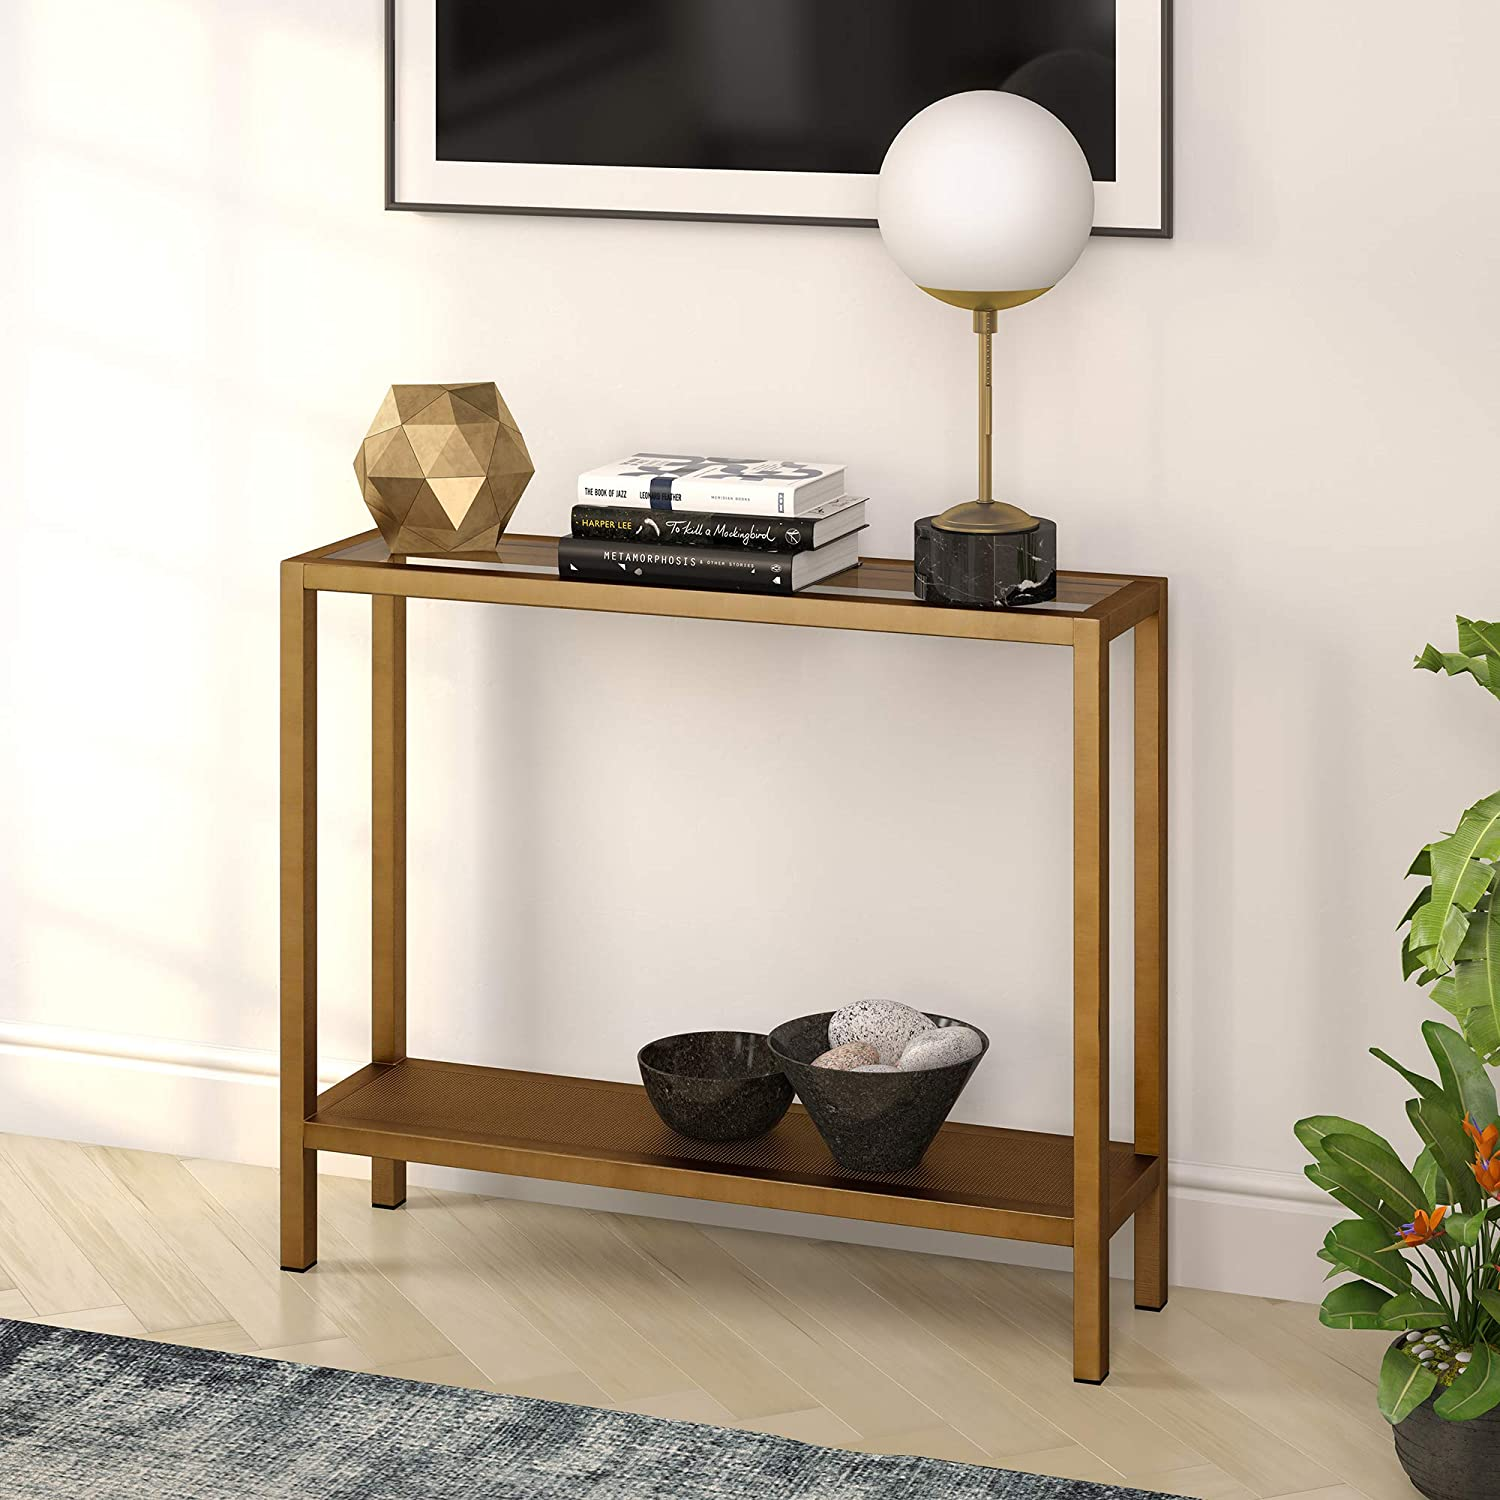 "Henn&Hart AT0175 Industrial Glass Sofa Perforated Metal Storage Shelf for Living Room, Narrow Entryway Brass Console table, 36"", Gold"